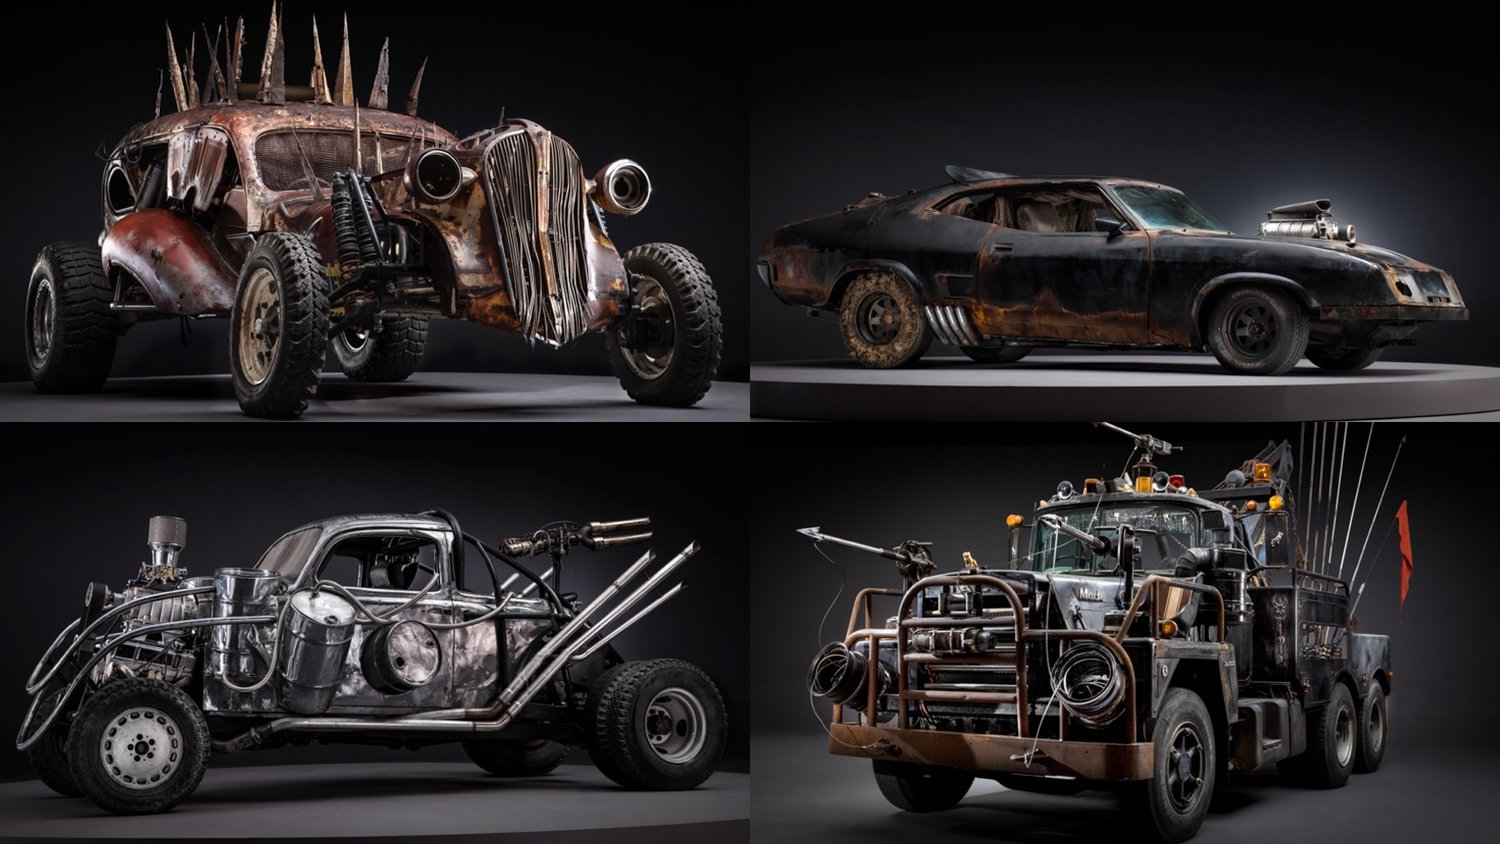 Stunning Photos Of The Badass Cars Of Mad Max Fury Road Before They